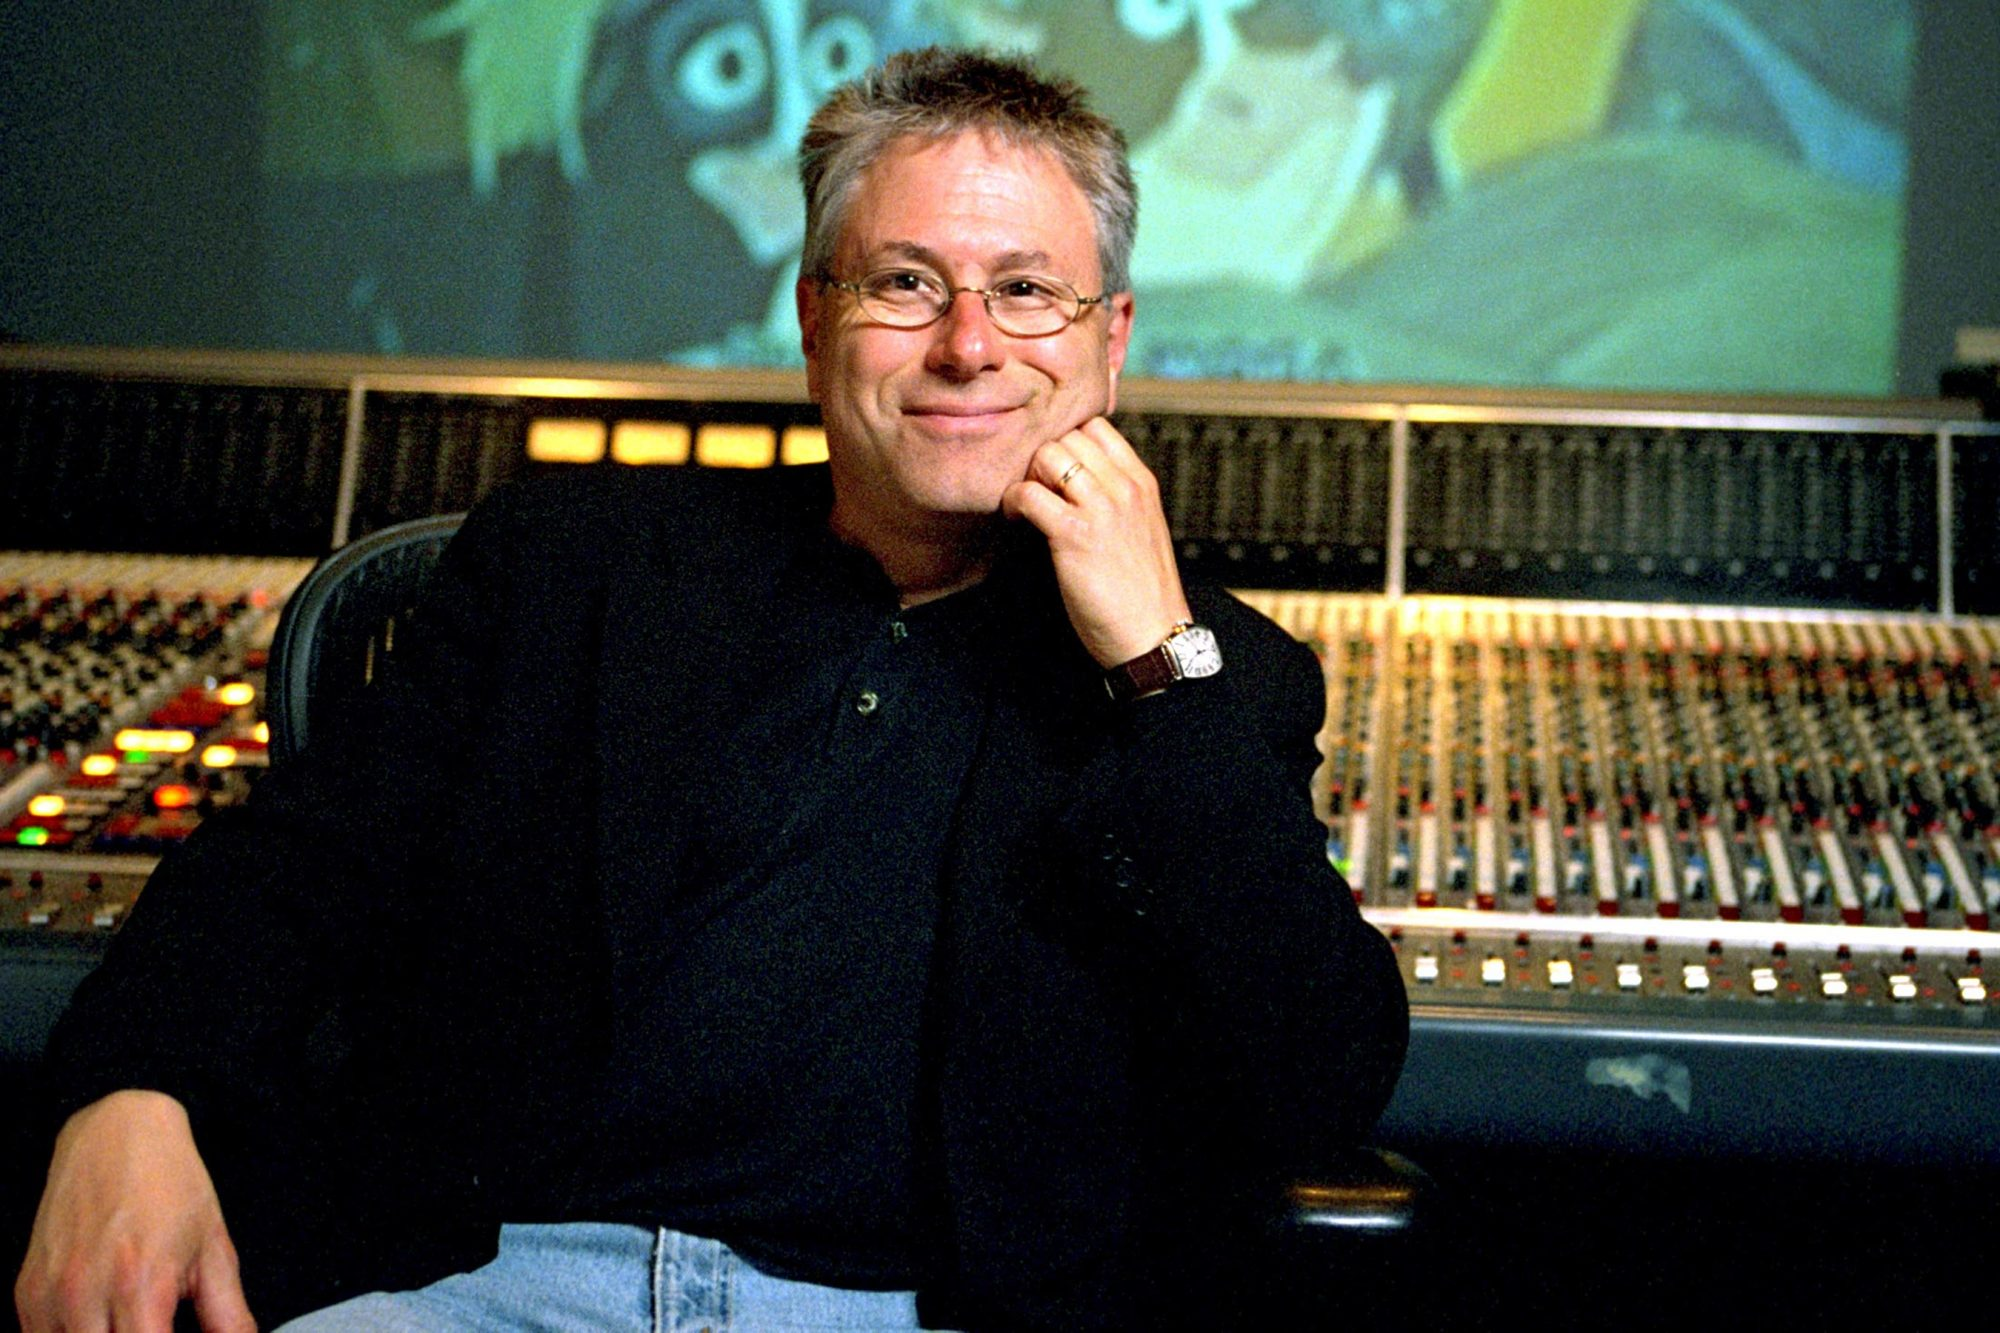 The 71-year old son of father (?) and mother(?) Alan Menken in 2021 photo. Alan Menken earned a  million dollar salary - leaving the net worth at  million in 2021